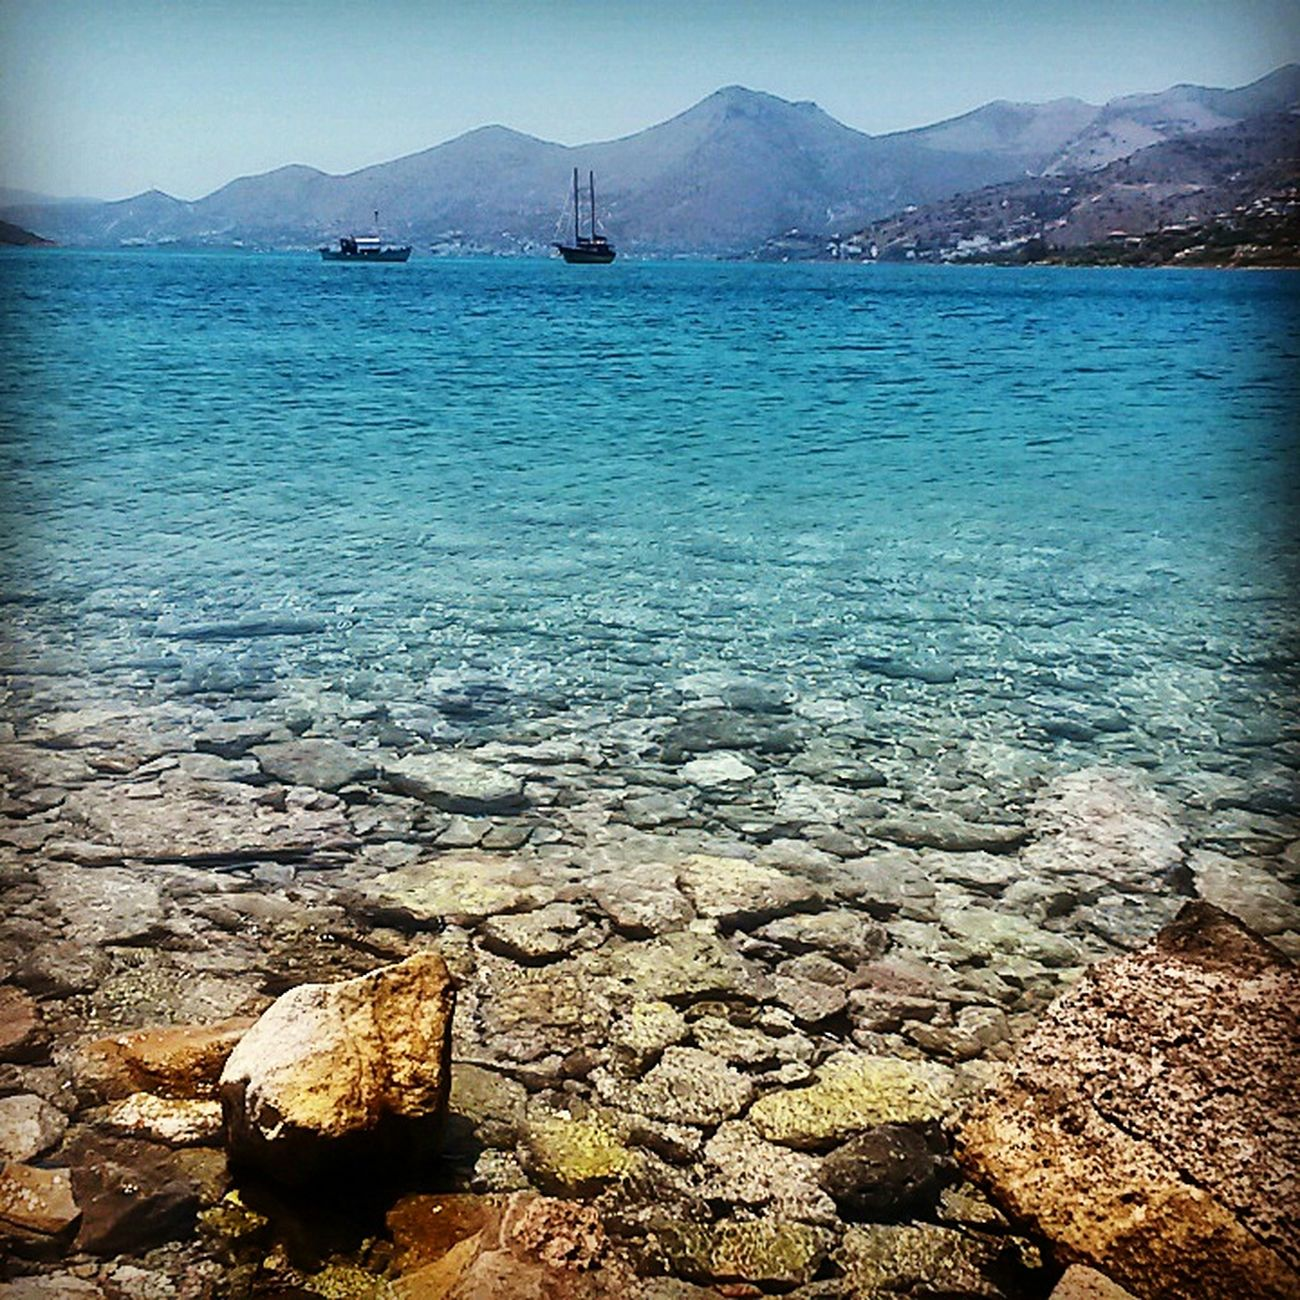 It's seems like we're going to find some treasures here. Keep Smiling Relaxing Hello World Travel Photography Enjoying Life Seaside Sea View Greece Landscape